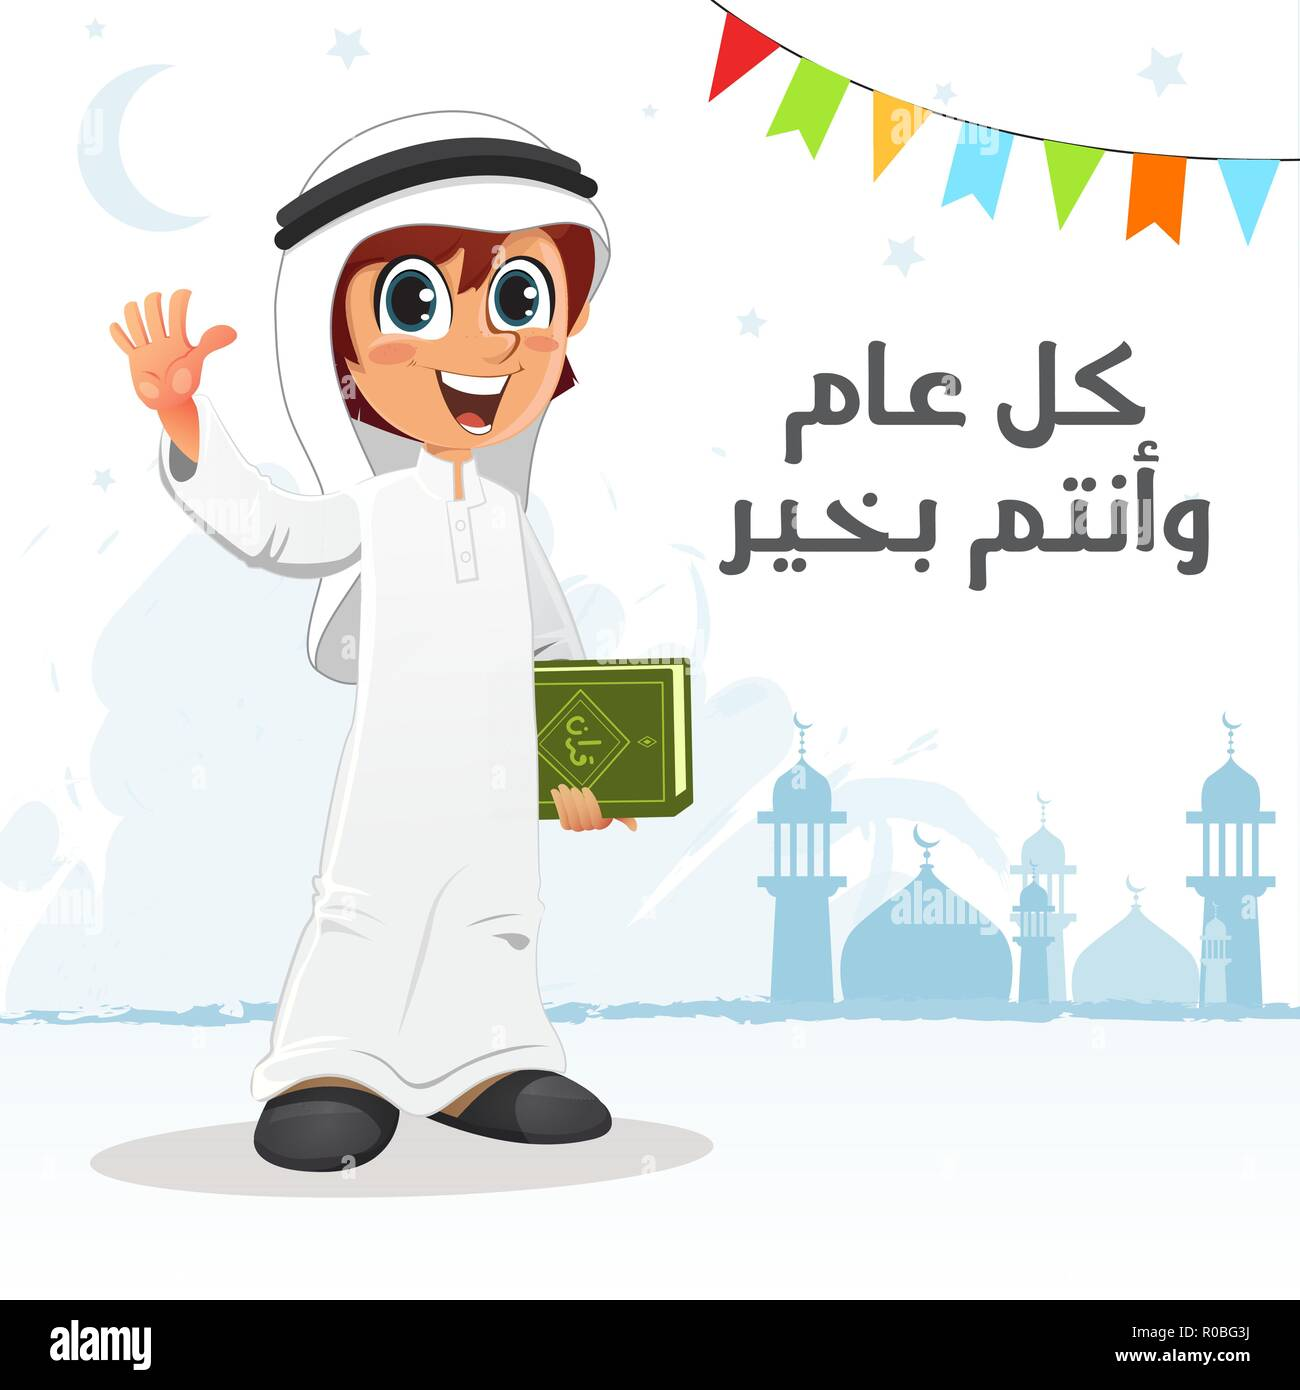 Illustration of Happy Muslim Arab Khaliji Boy Wearing Common Uniform, Djellaba Stock Vector